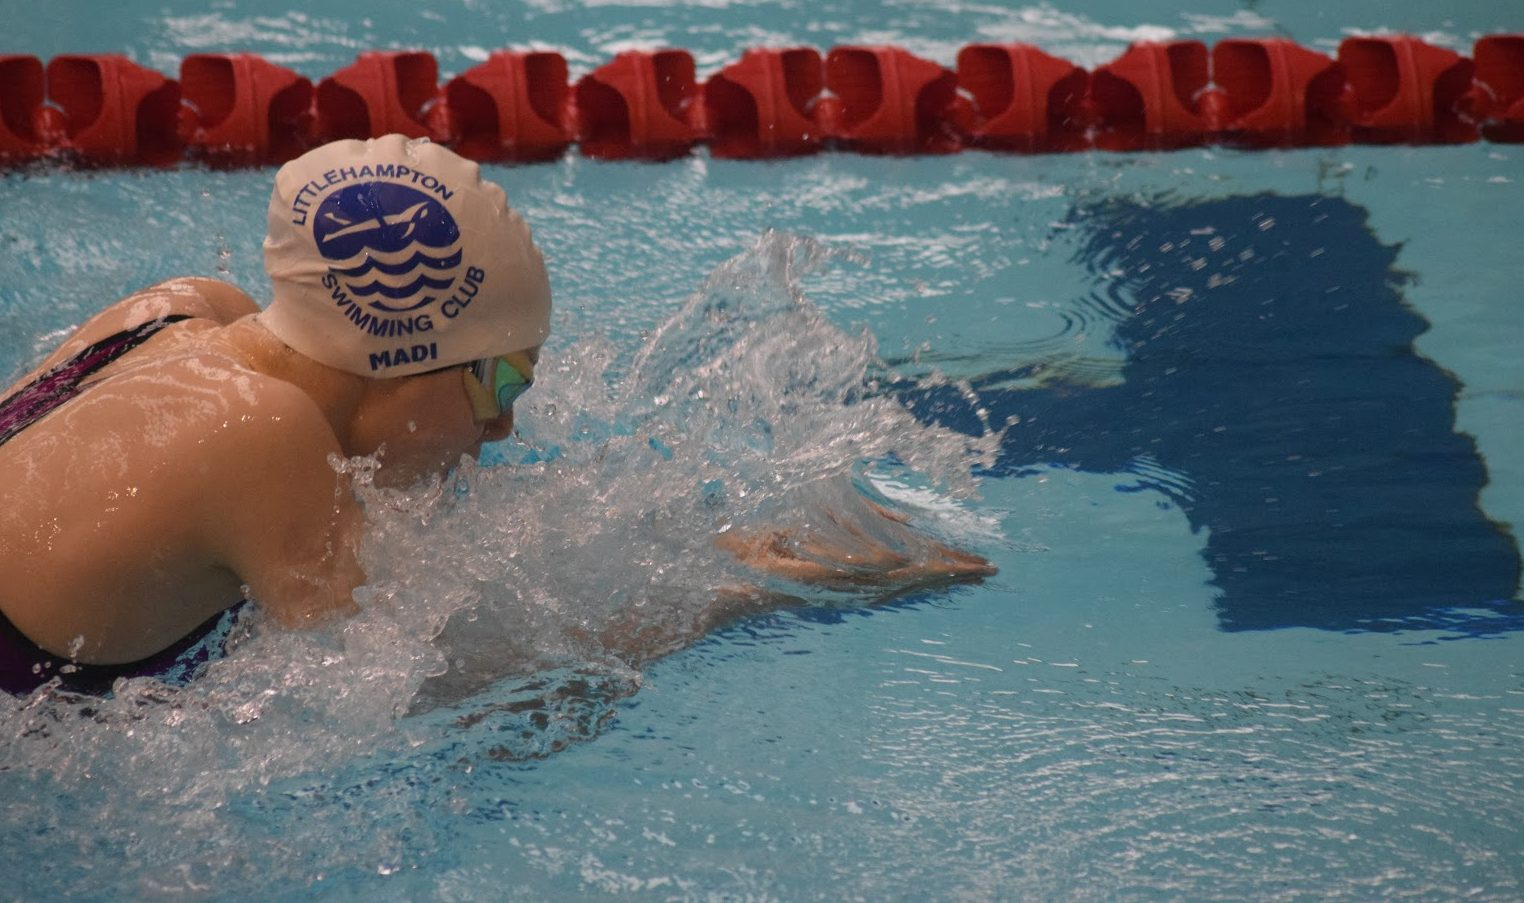 Madi Walker swims at the Sussex County Championships 2017 Final weekend